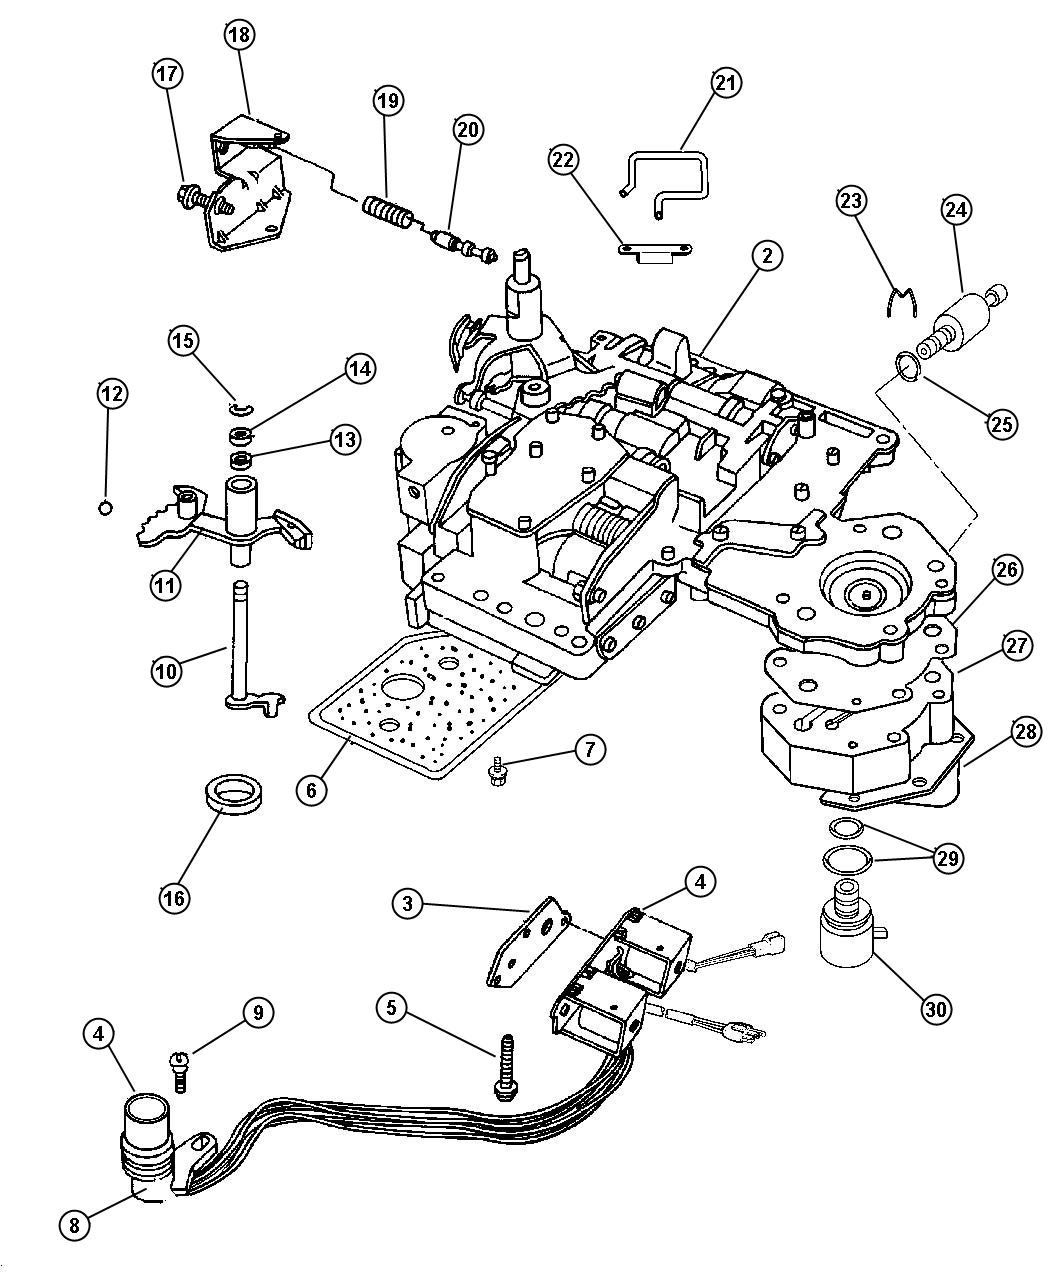 Service manual [How To Install 2002 Dodge Durango Valve